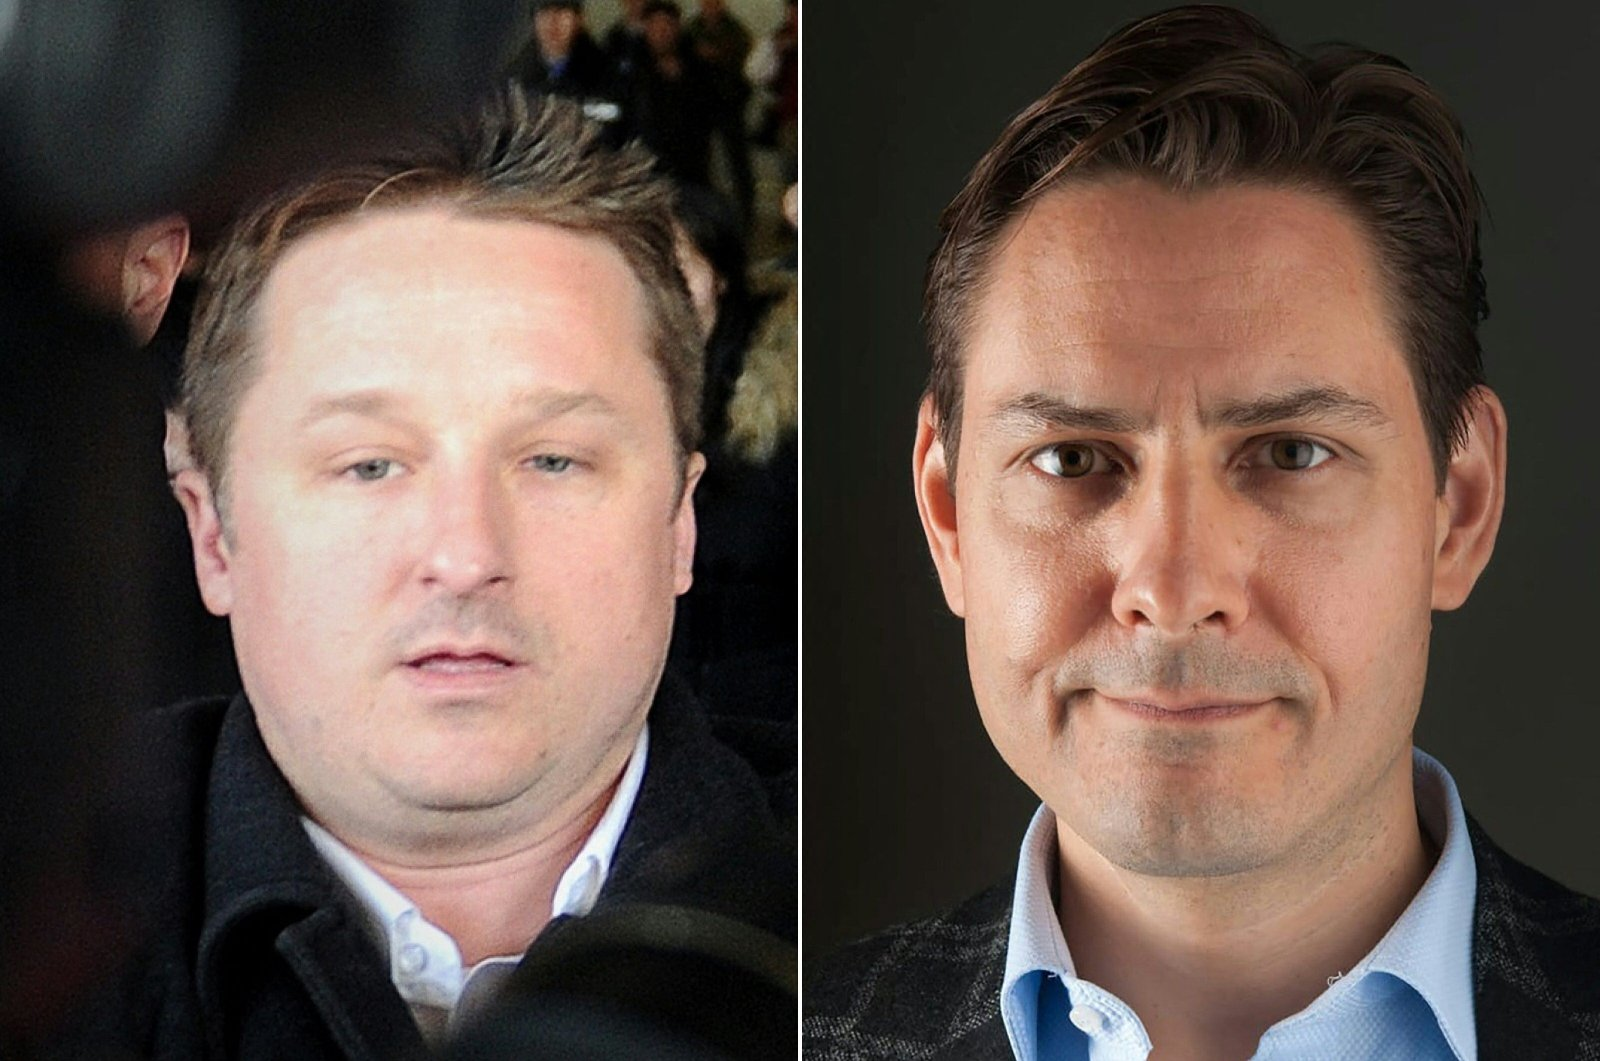 This combination of file pictures created on September 24, 2021, shows Canadian businessman Michael Spavor (L) walking at Beijing International Airport on January 13, 2014, after arriving from North Korea and an undated portrait picture released on December 11, 2018, in Washington by the International Crisis Group showing former Canadian diplomat Michael Kovrig. (CRISISGROUP/Julie David de Lossy via AFP)